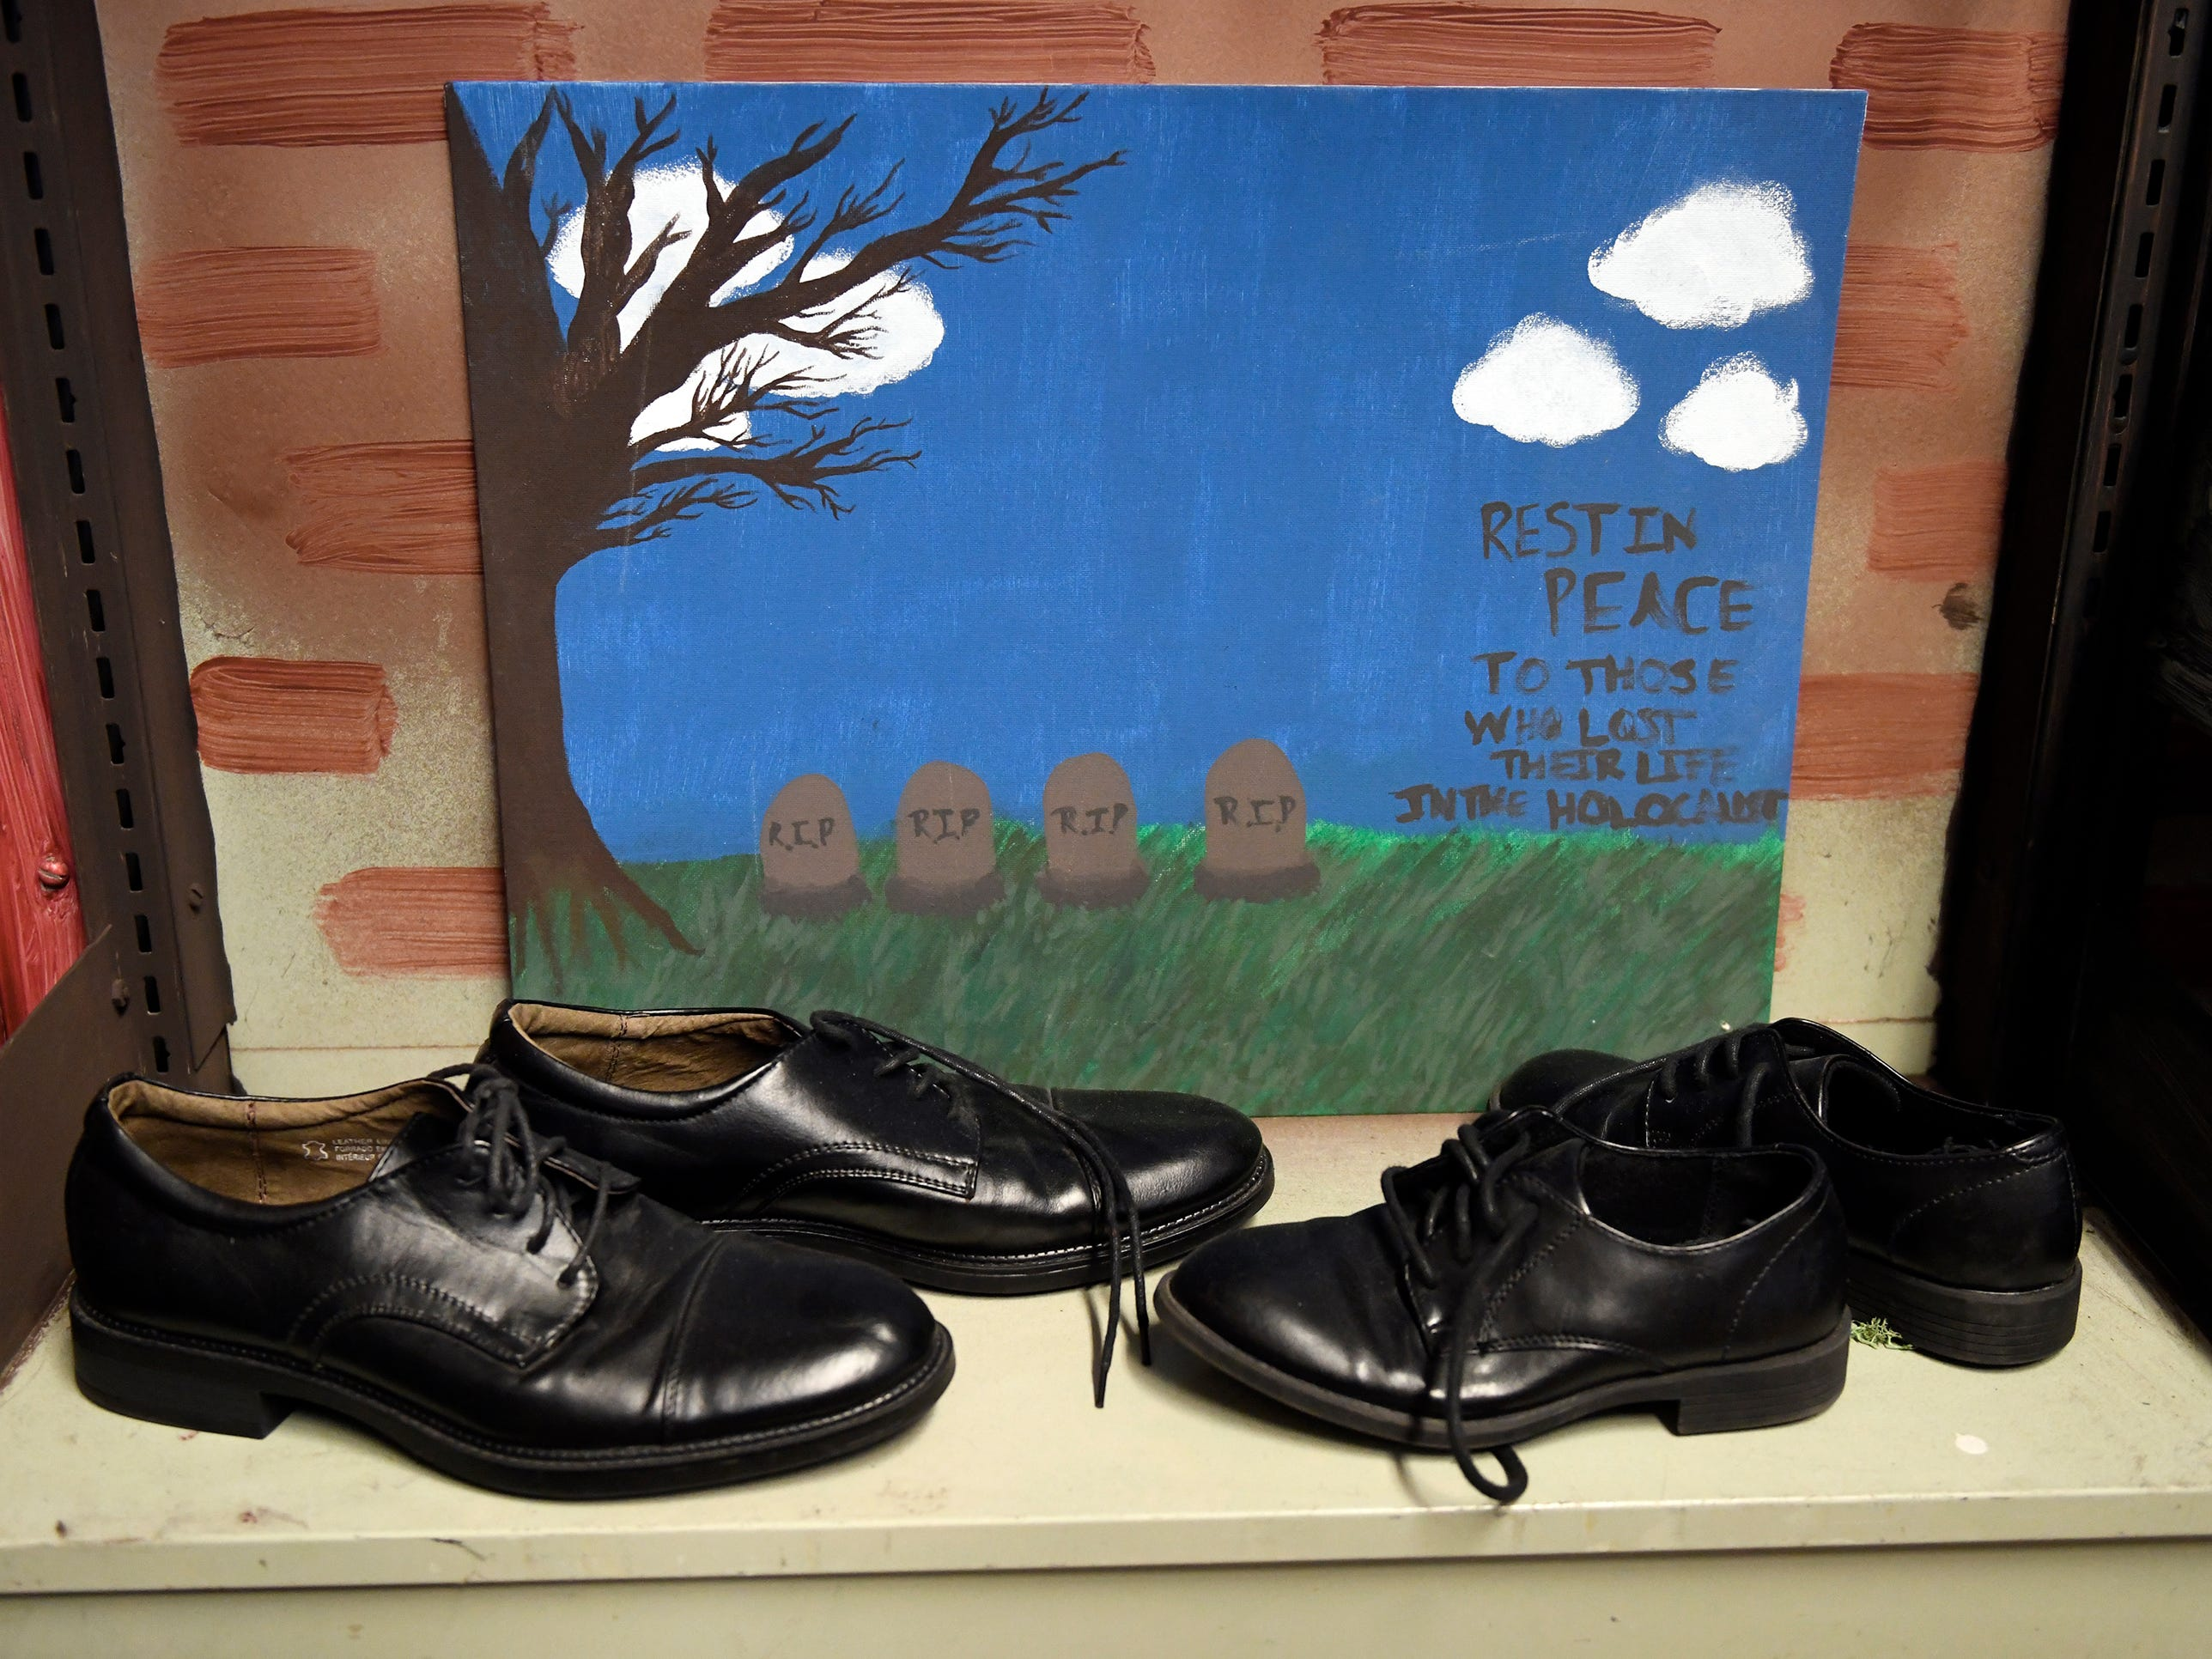 The permanent exhibit to honor Vineland Holocaust survivors replicates the Holocaust Museum display of shoes confiscated from concentration camp prisoners along side student artwork.